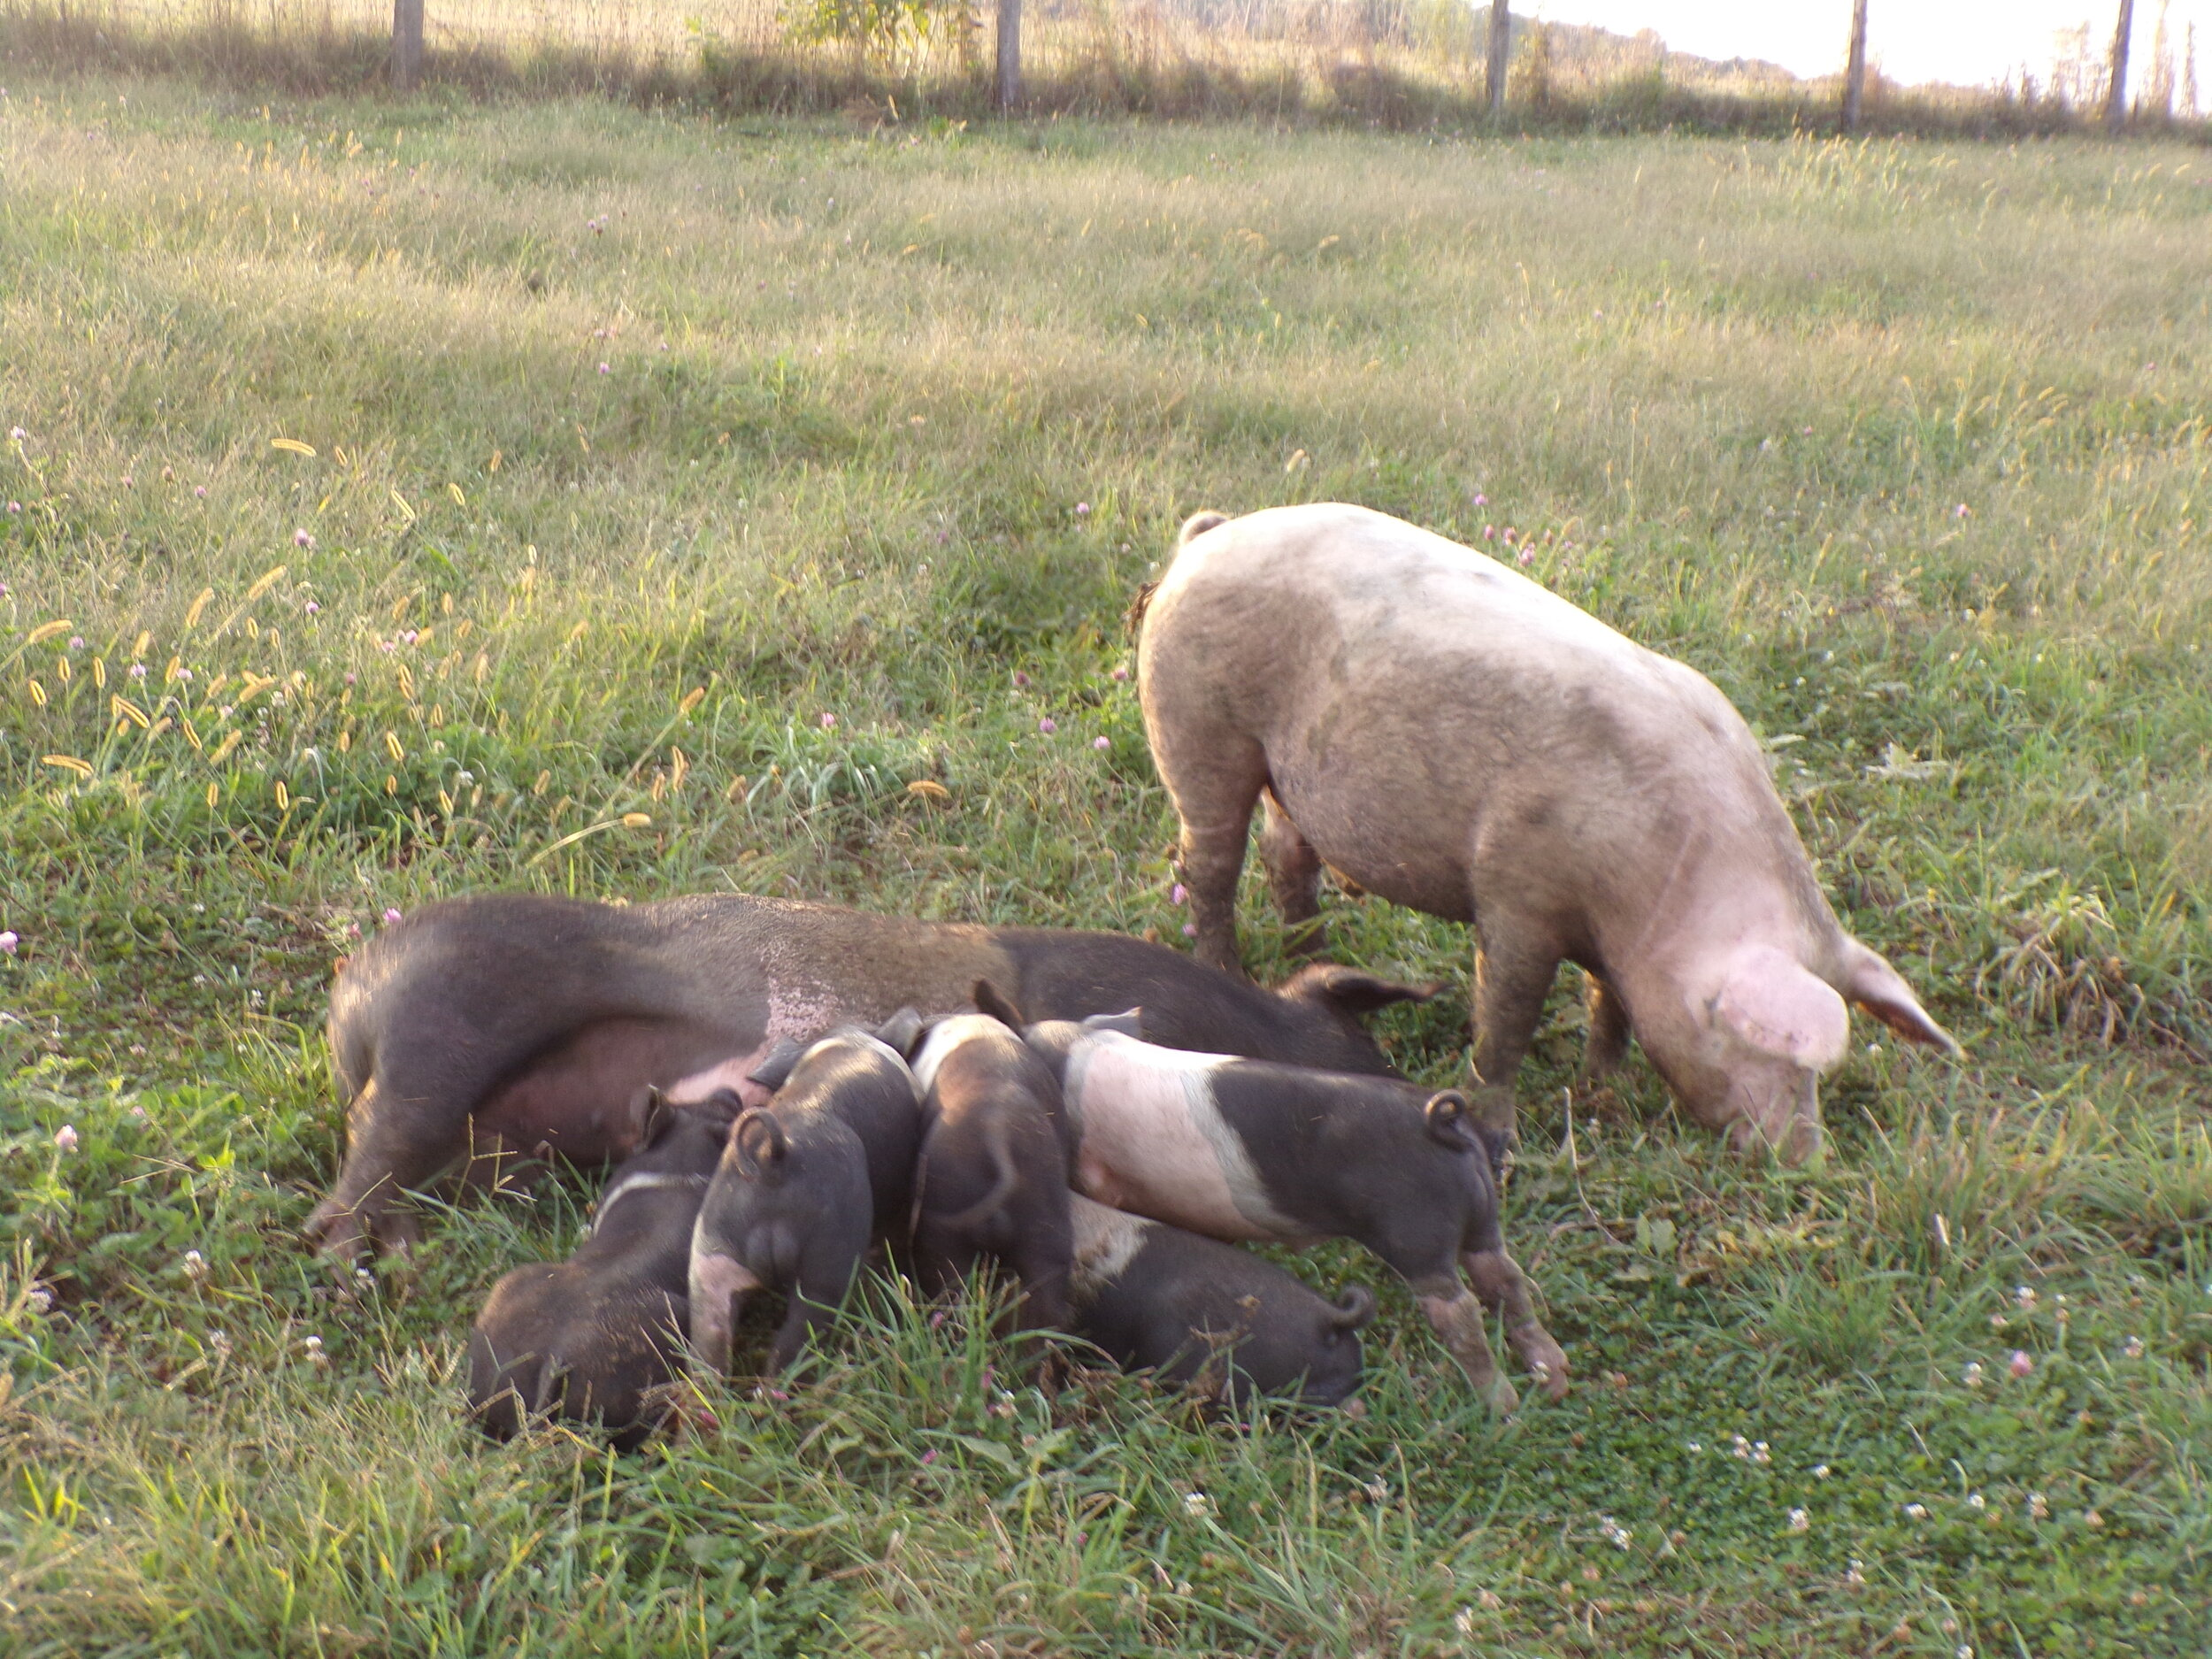 The Father Pig loves to eat grass all the time. Such a beautiful Picture of the complete Pig Family!